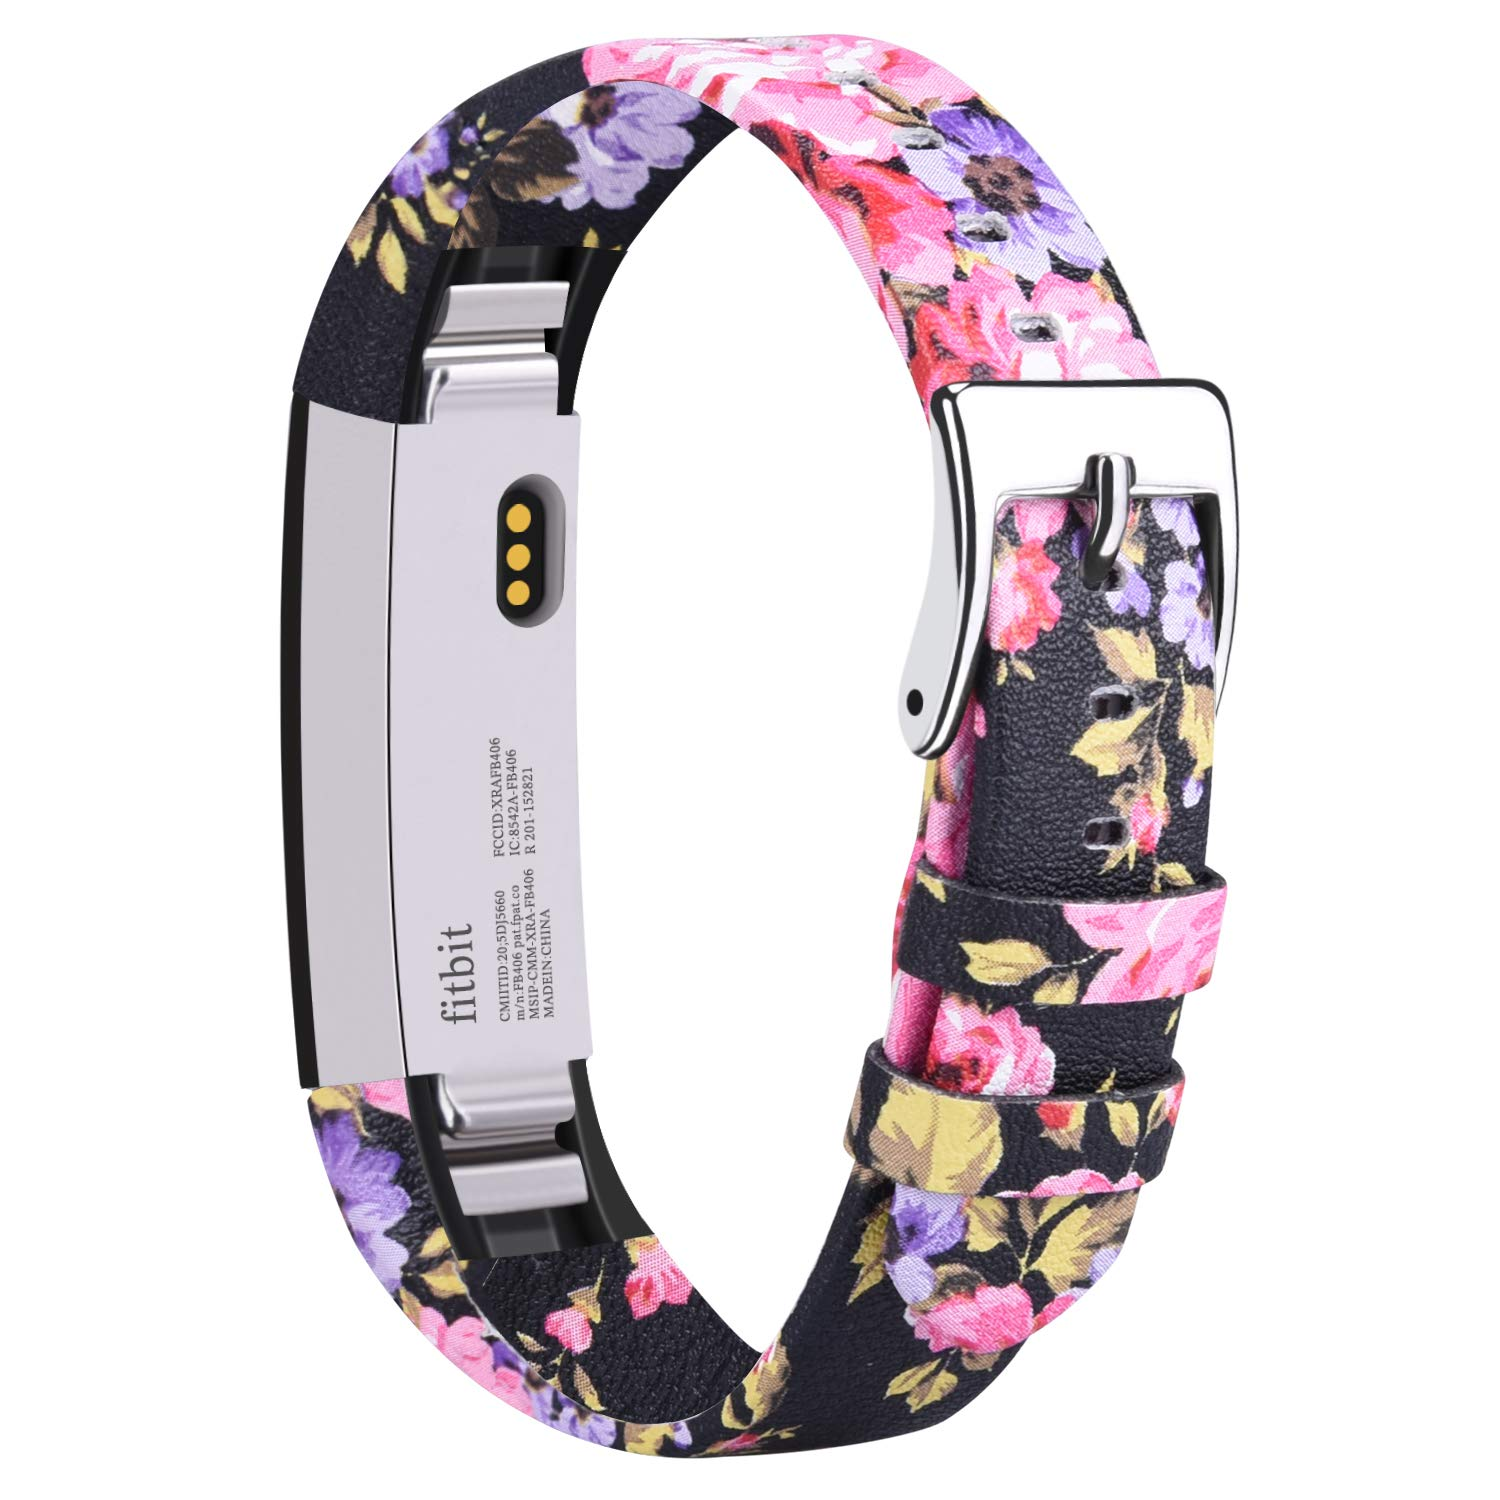 Vancle Leather Bands Compatible with Fitbit Alta/Fitbit Alta HR for Women Men, Adjustable Replacement Accessories Strap with Buckle for Fitbit Alta and Fitbit Alta HR (.Floral Pink)